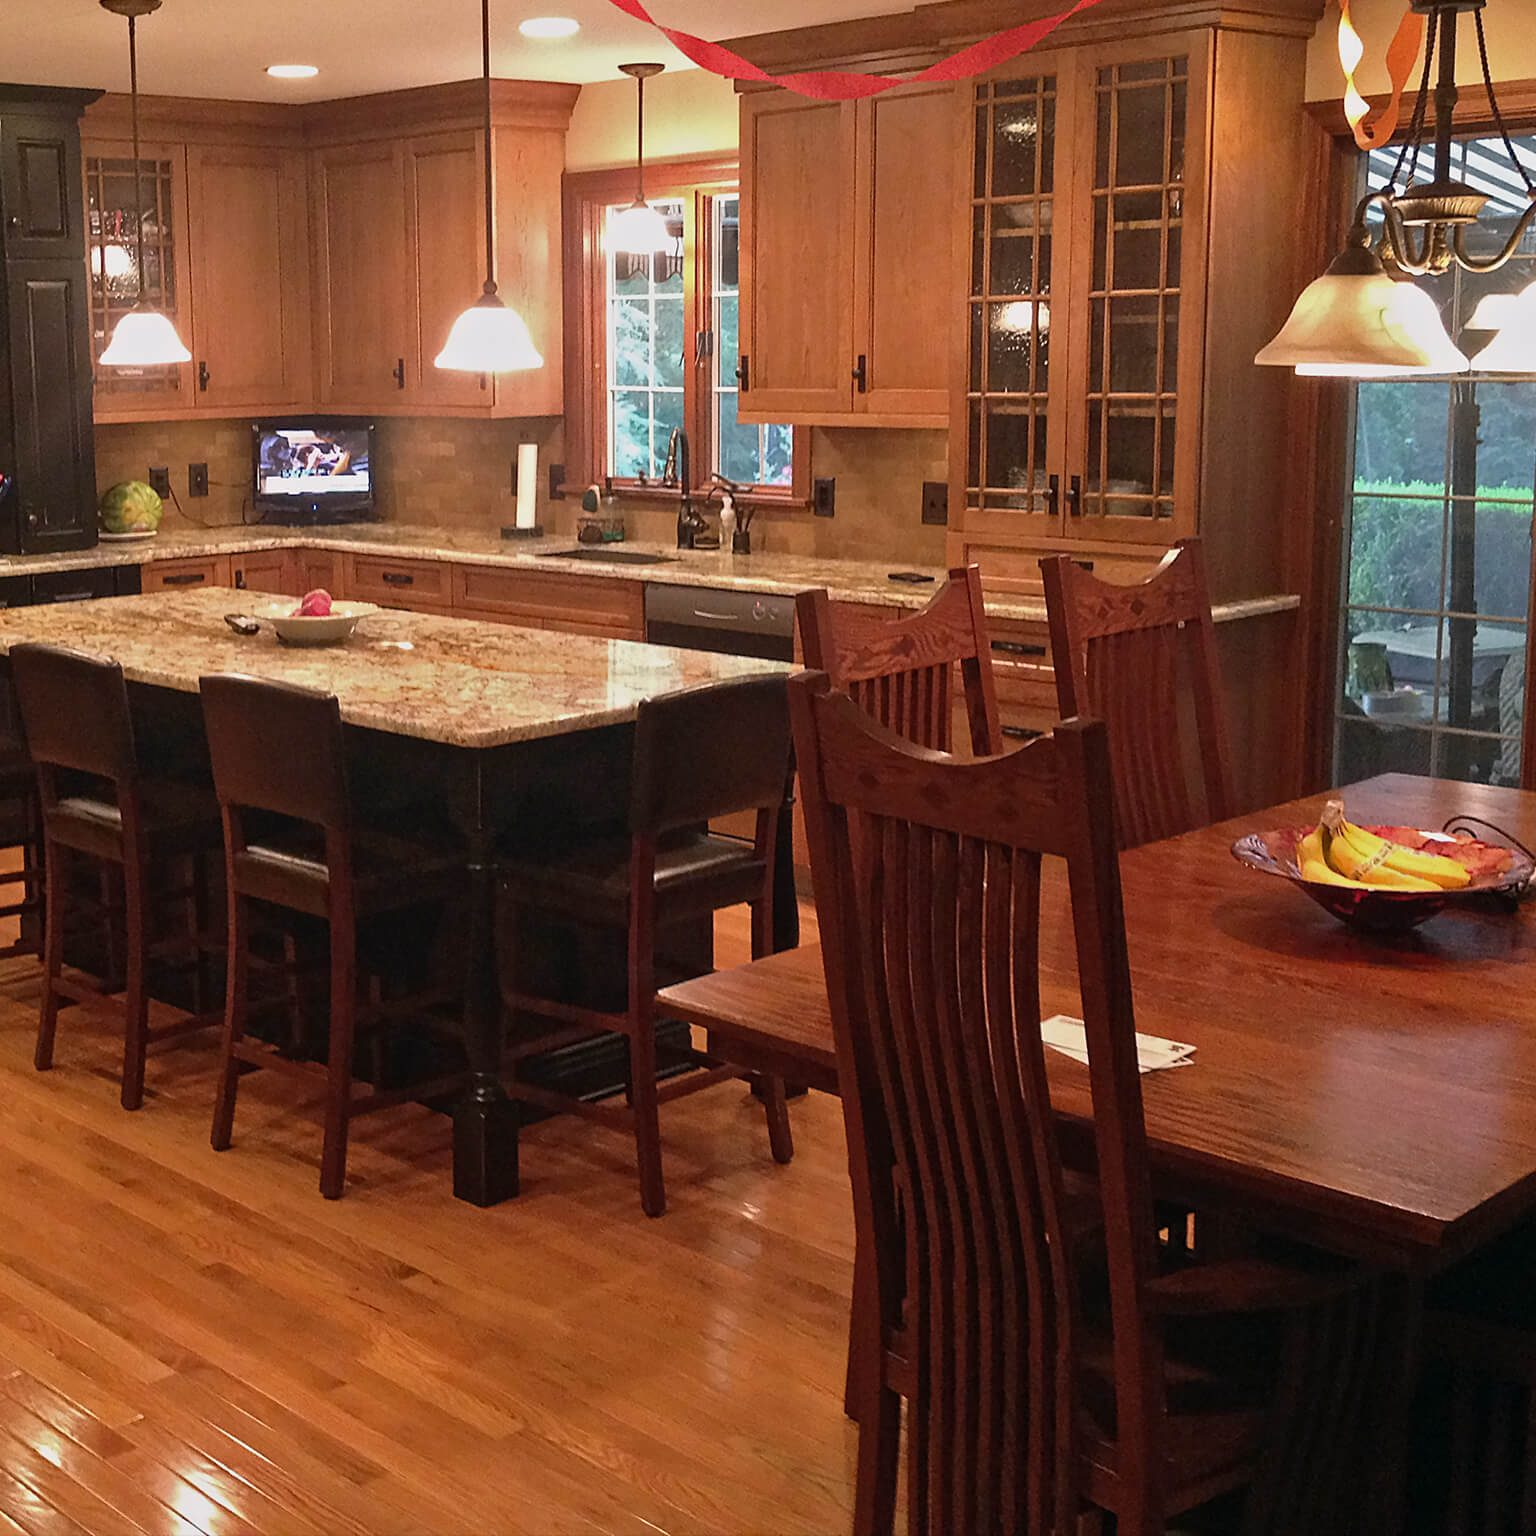 Kinetic Kitchen and Bath Gallery Photo - Kitchen remodel design 13